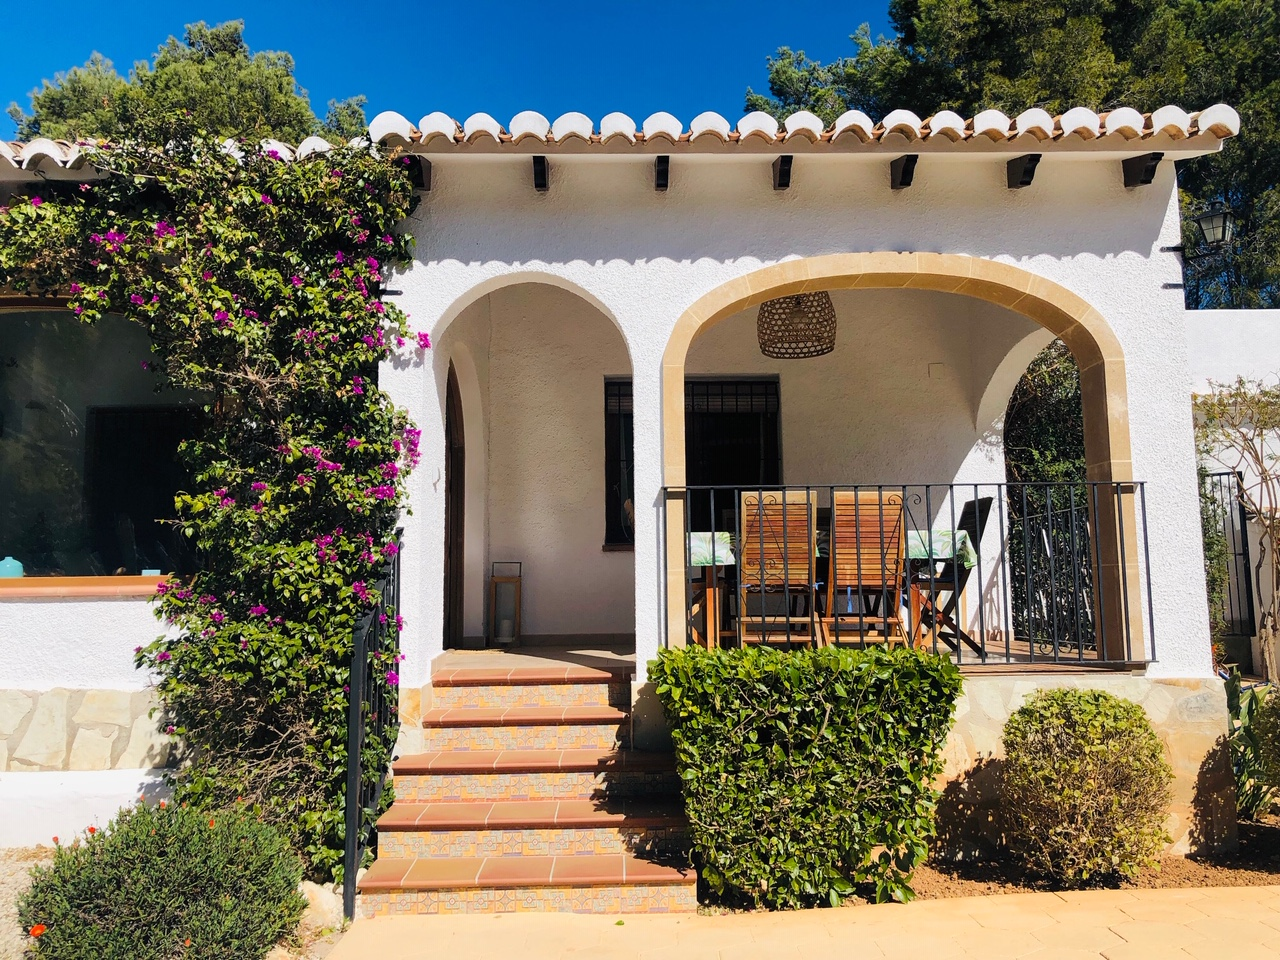 Entrepinos,Wonderful and comfortable holiday house in Javea, on the Costa Blanca, Spain for 6 persons.....